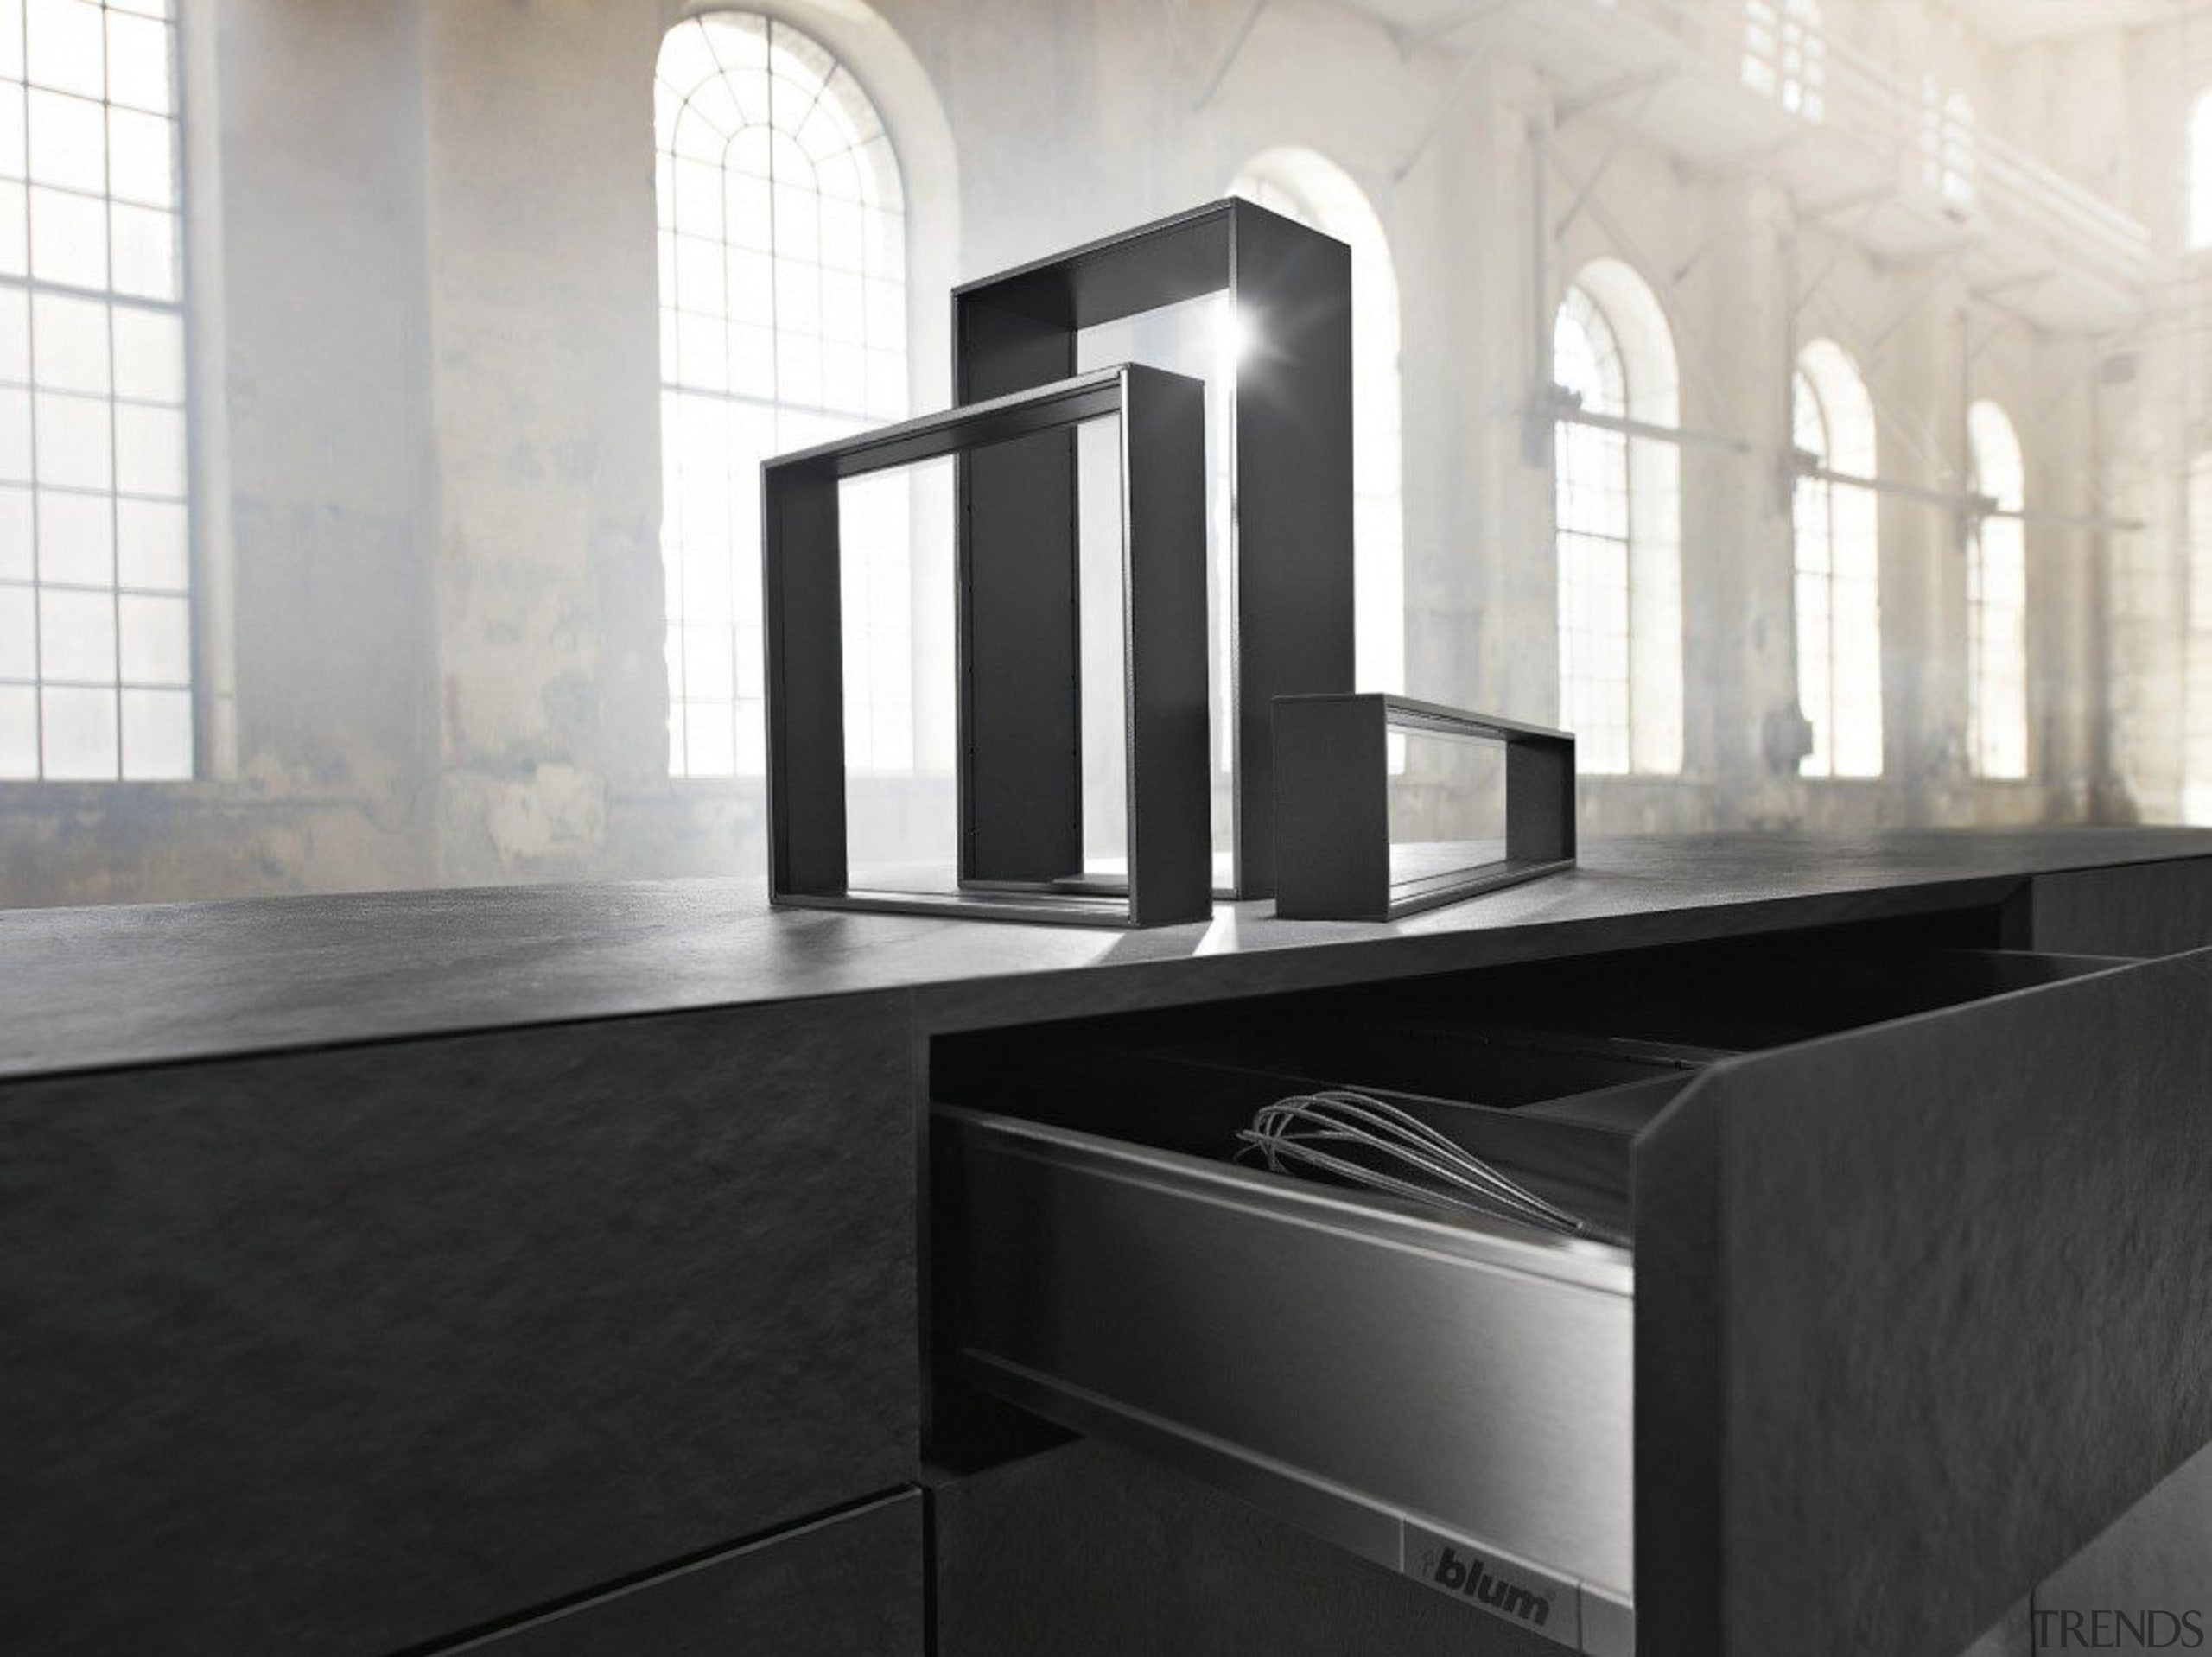 AMBIA-LINE inner dividing system – organization at its countertop, floor, flooring, furniture, interior design, product design, sink, tap, tile, black, white